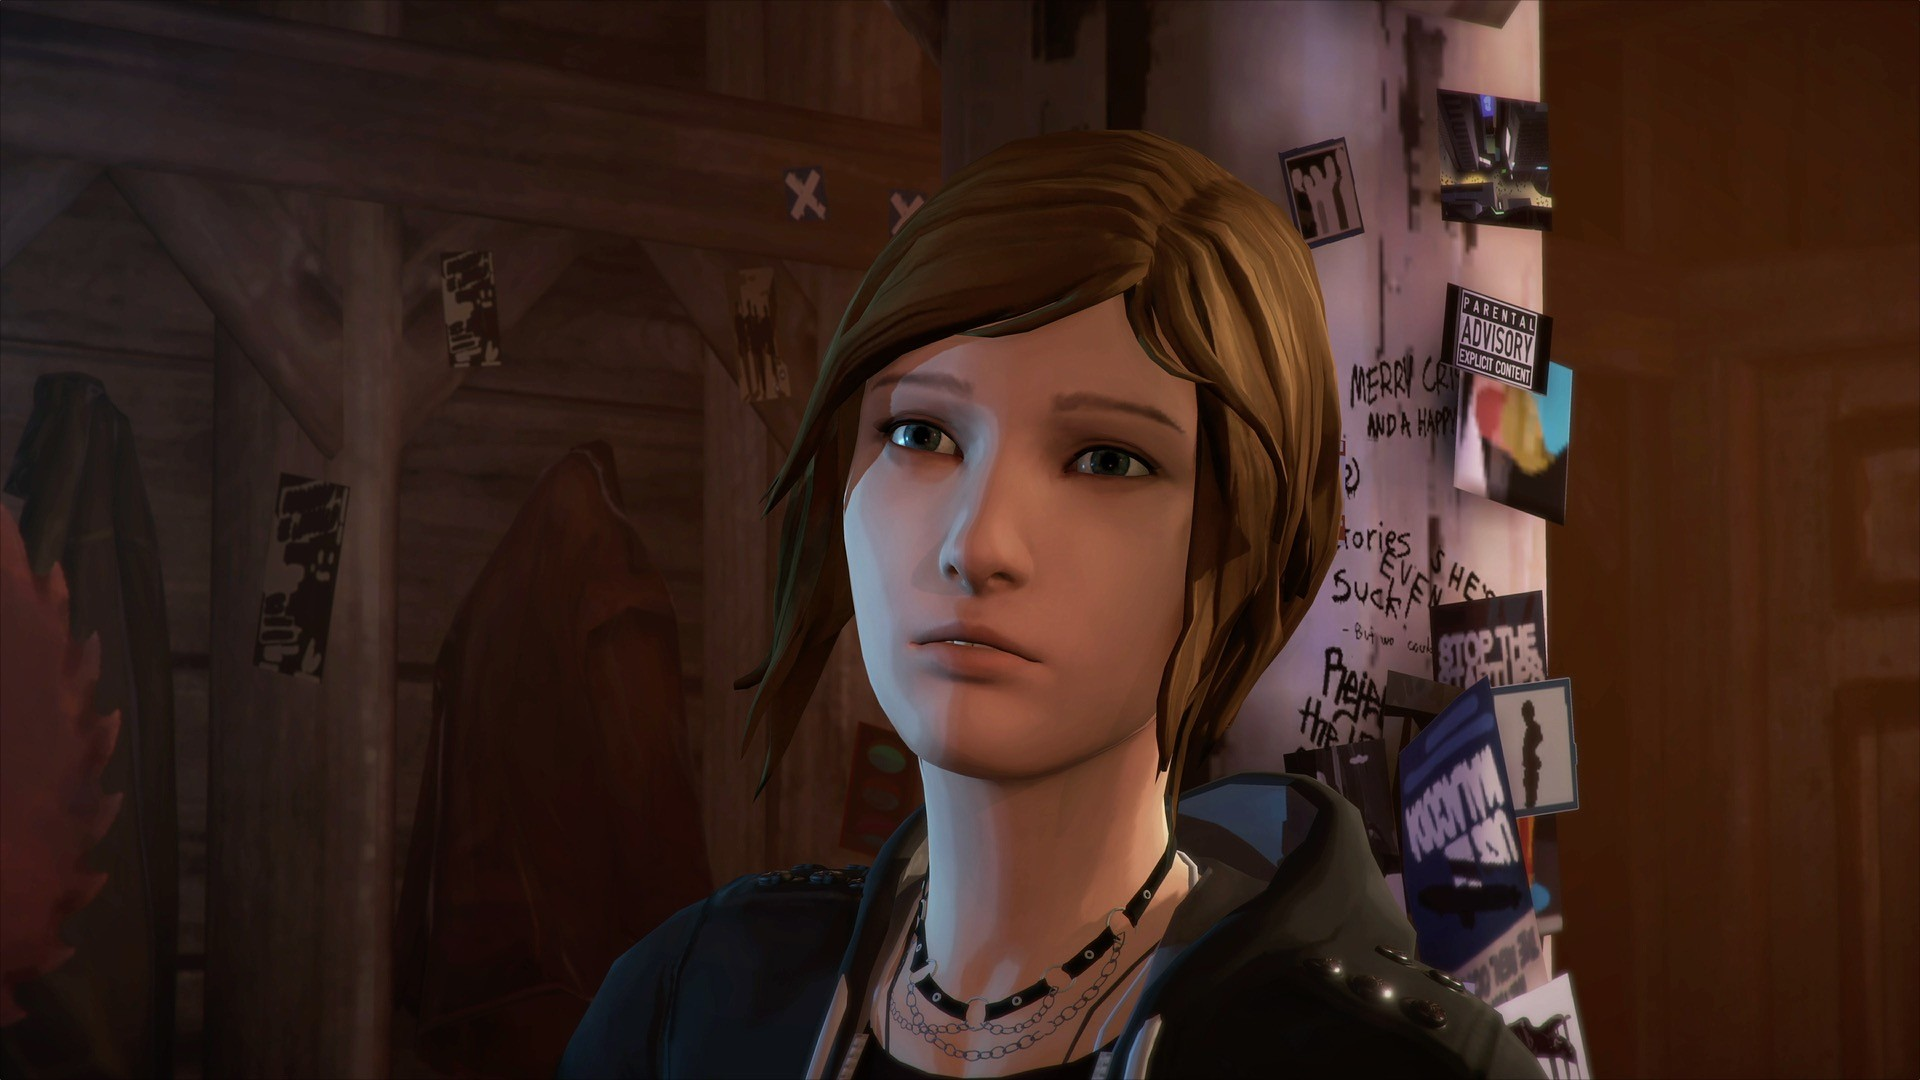 Res: 1920x1080, You play as Chloe Price, a rebellious sixteen-year-old who forms an  unlikely friendship with Rachel Amber, a popular student destined for  success.